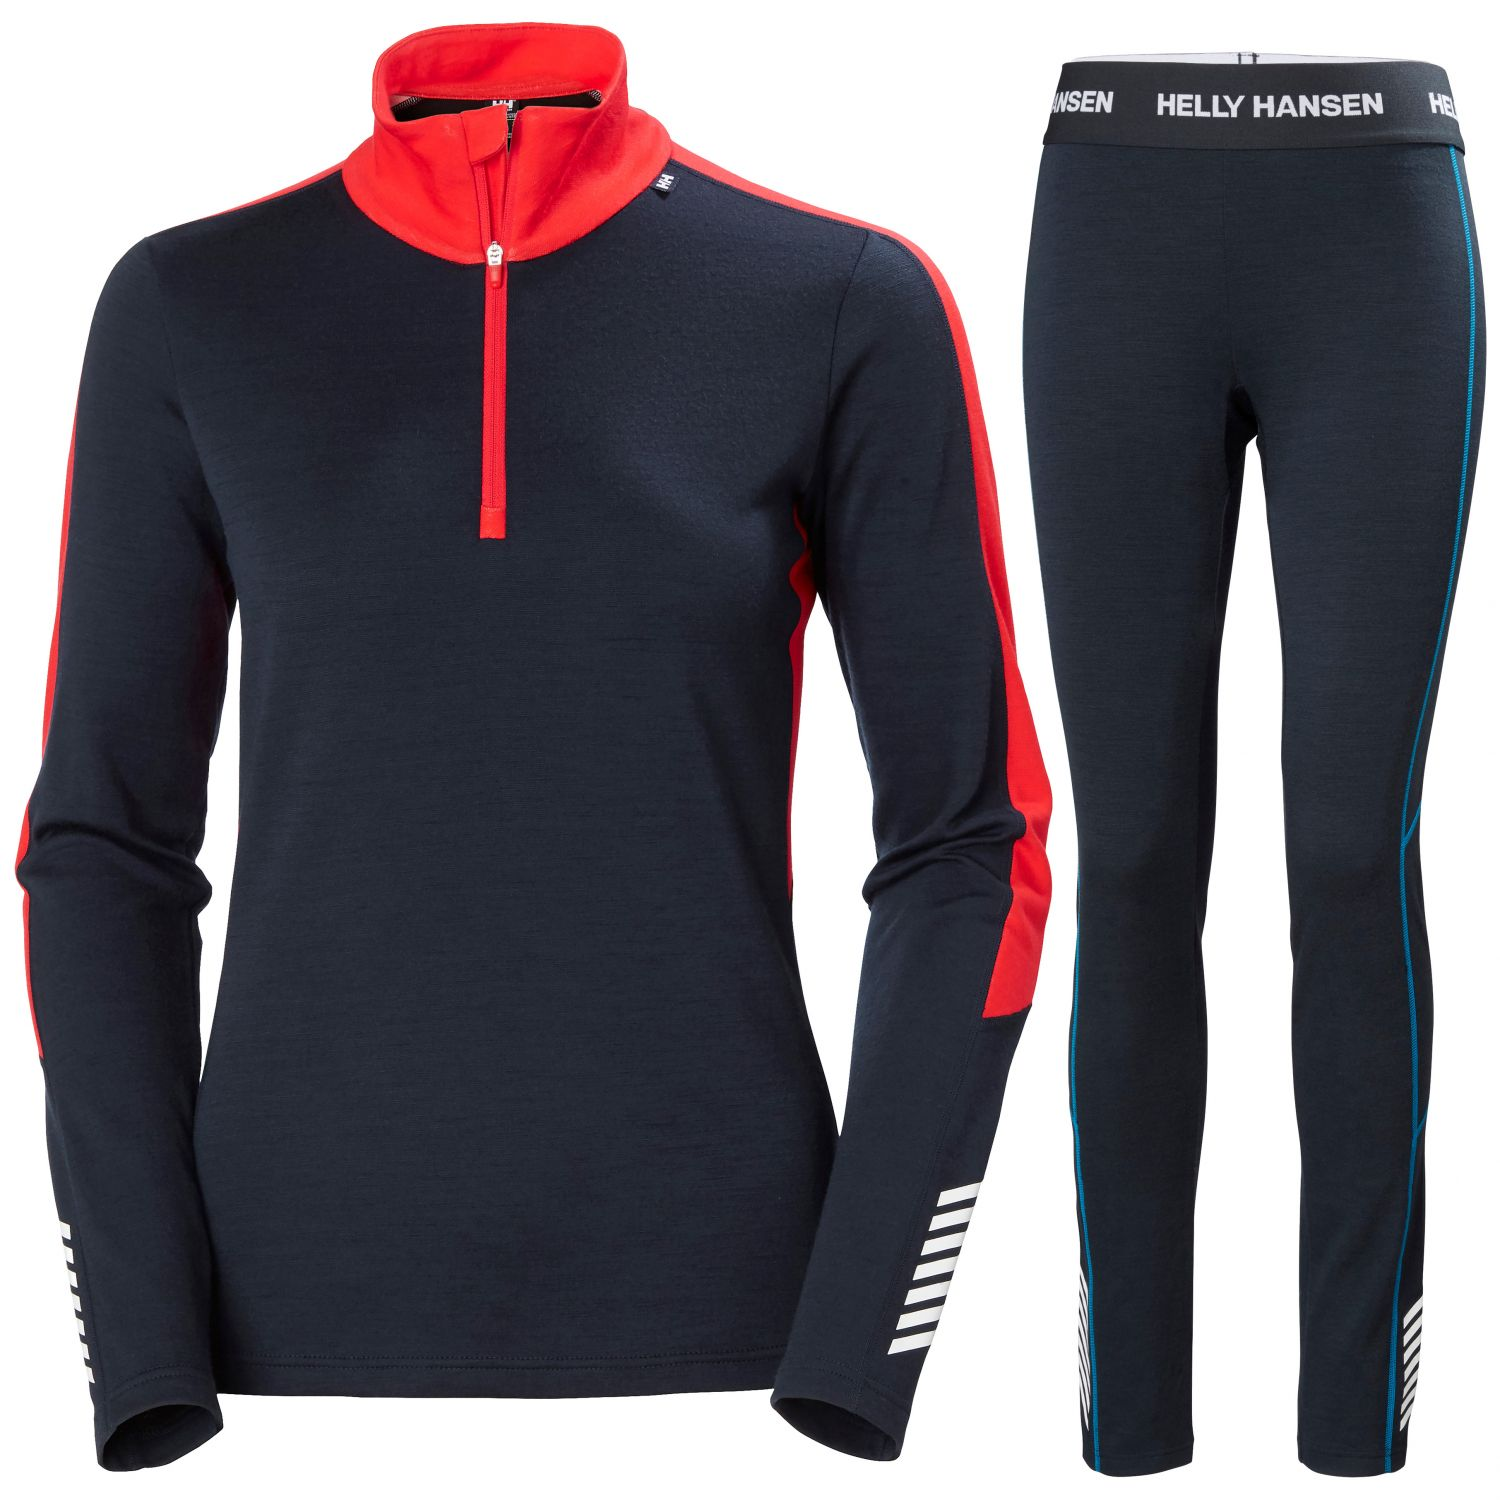 Helly Hansen Lifa Merino Lightweight 1/2 zip, women, navy